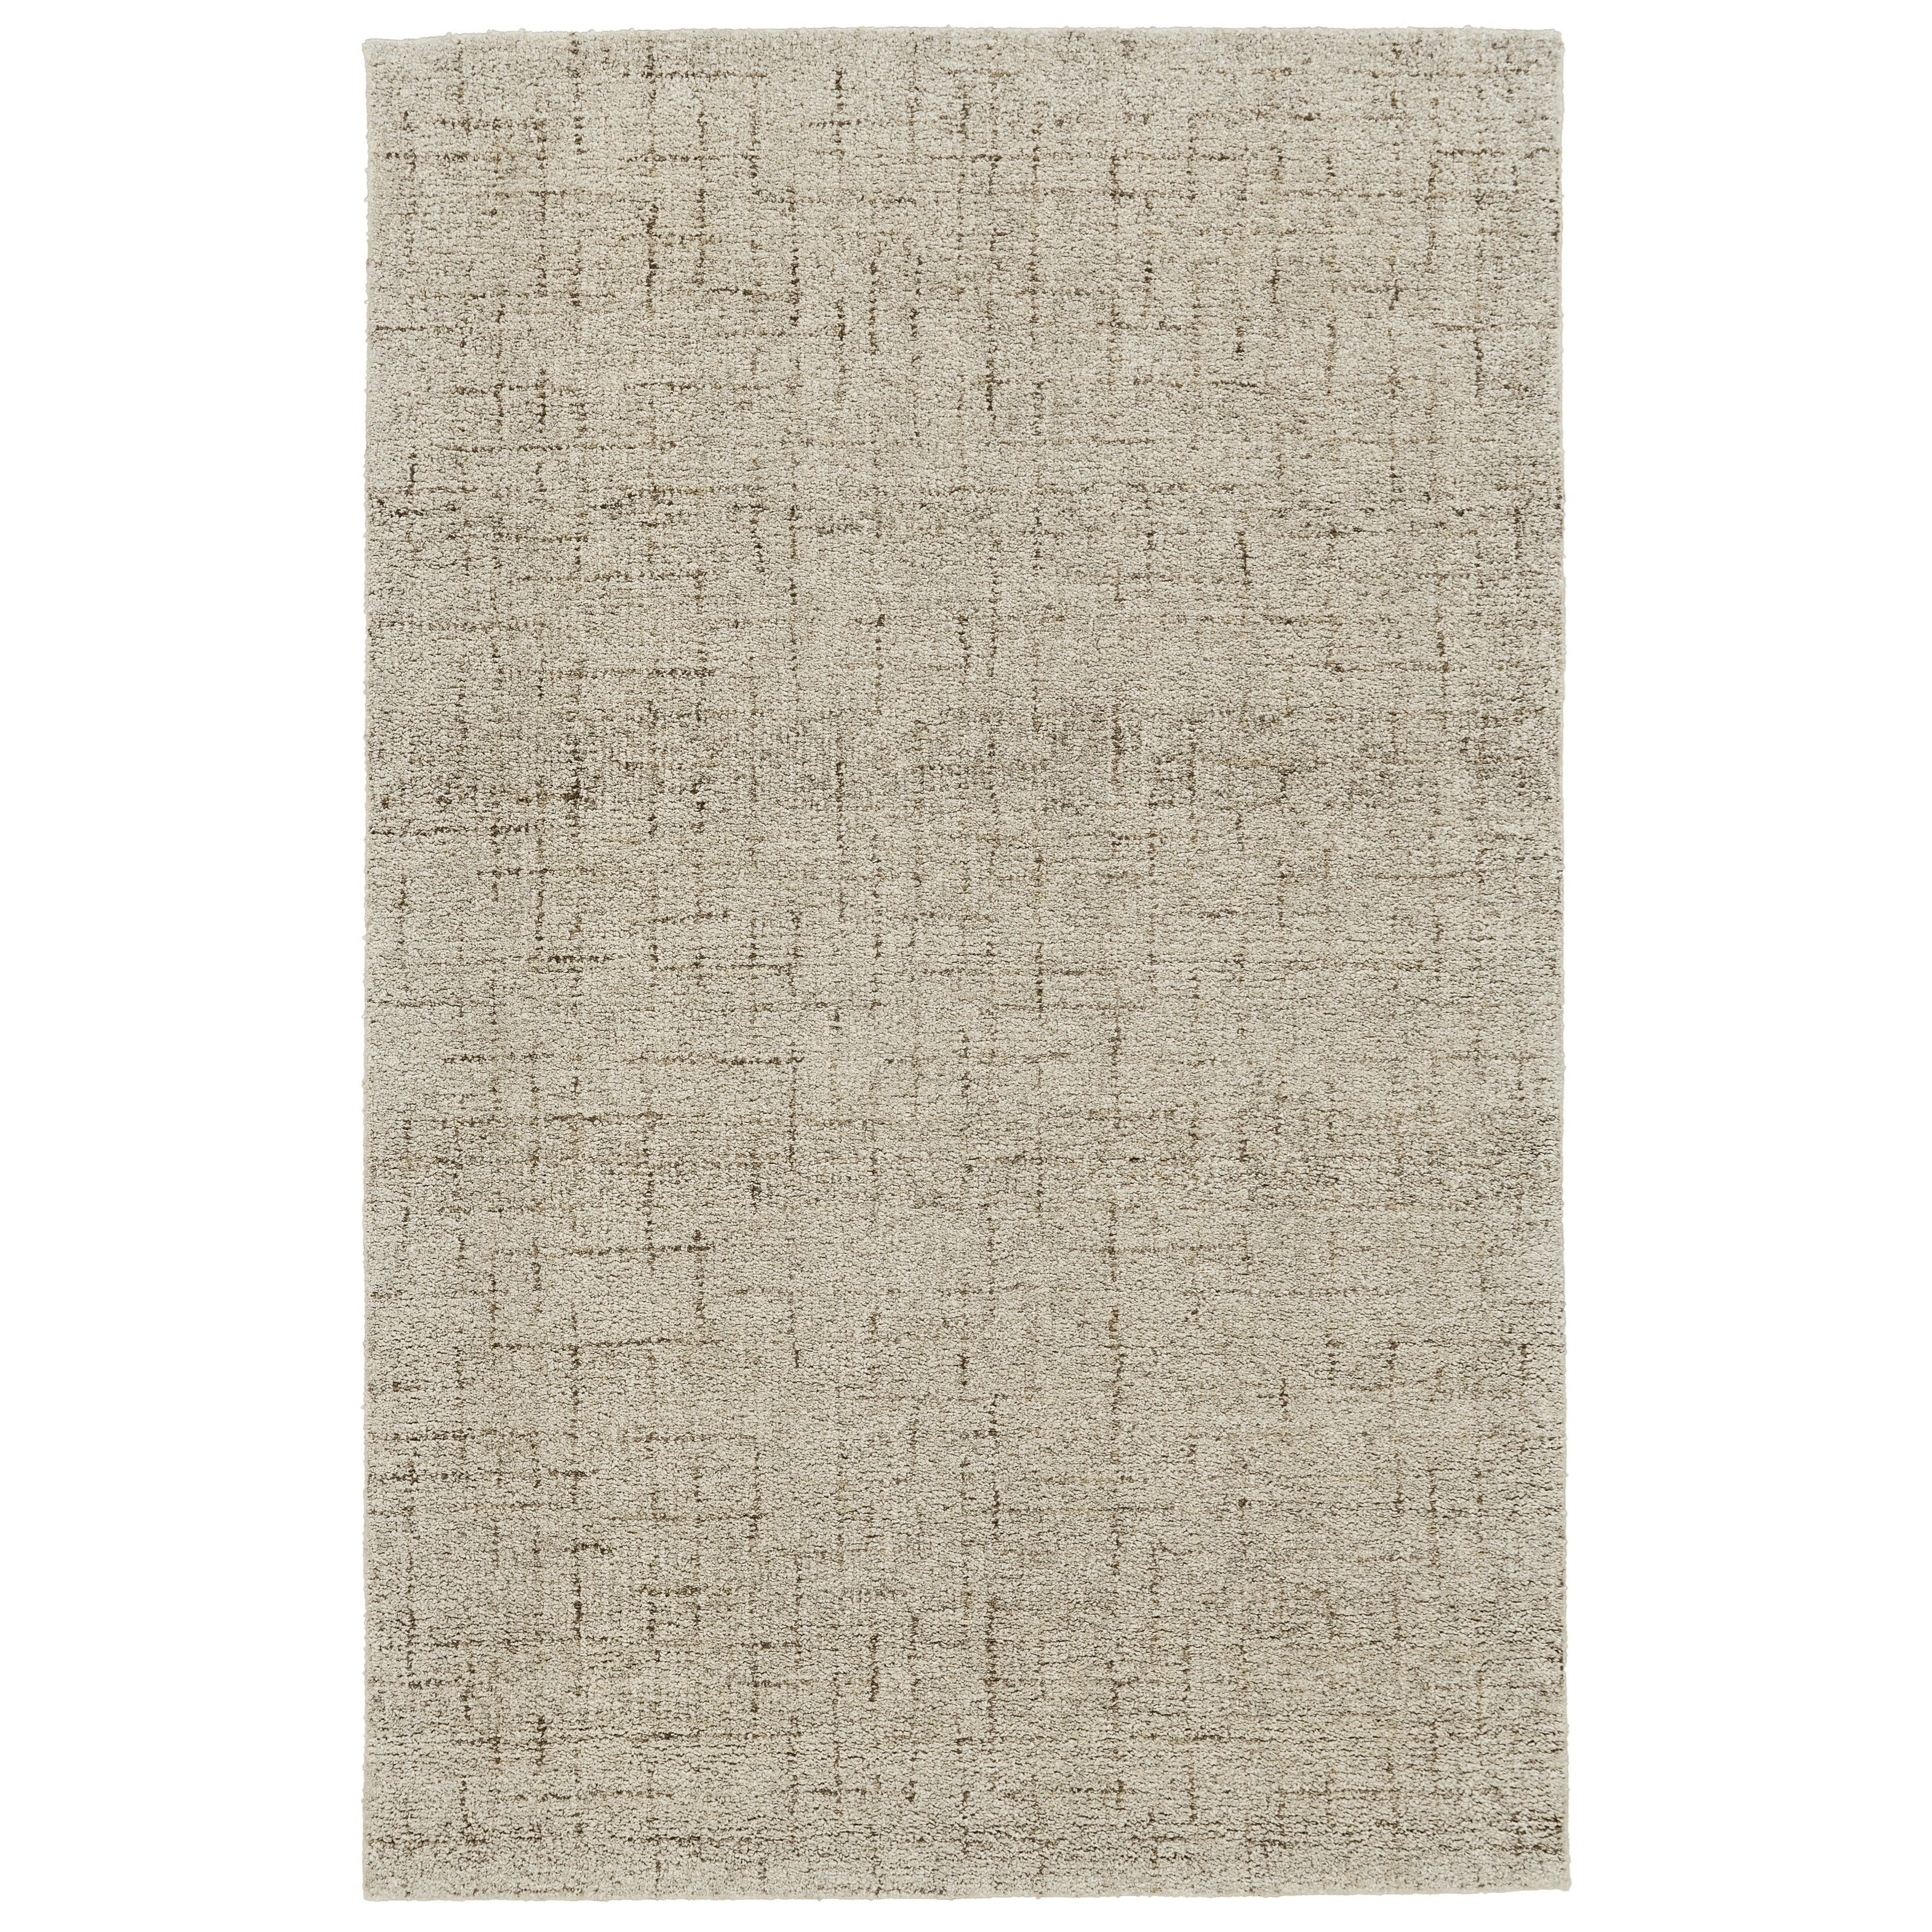 Morisco Oatmeal 8' X 11' Area Rug by Feizy Rugs at Jacksonville Furniture Mart